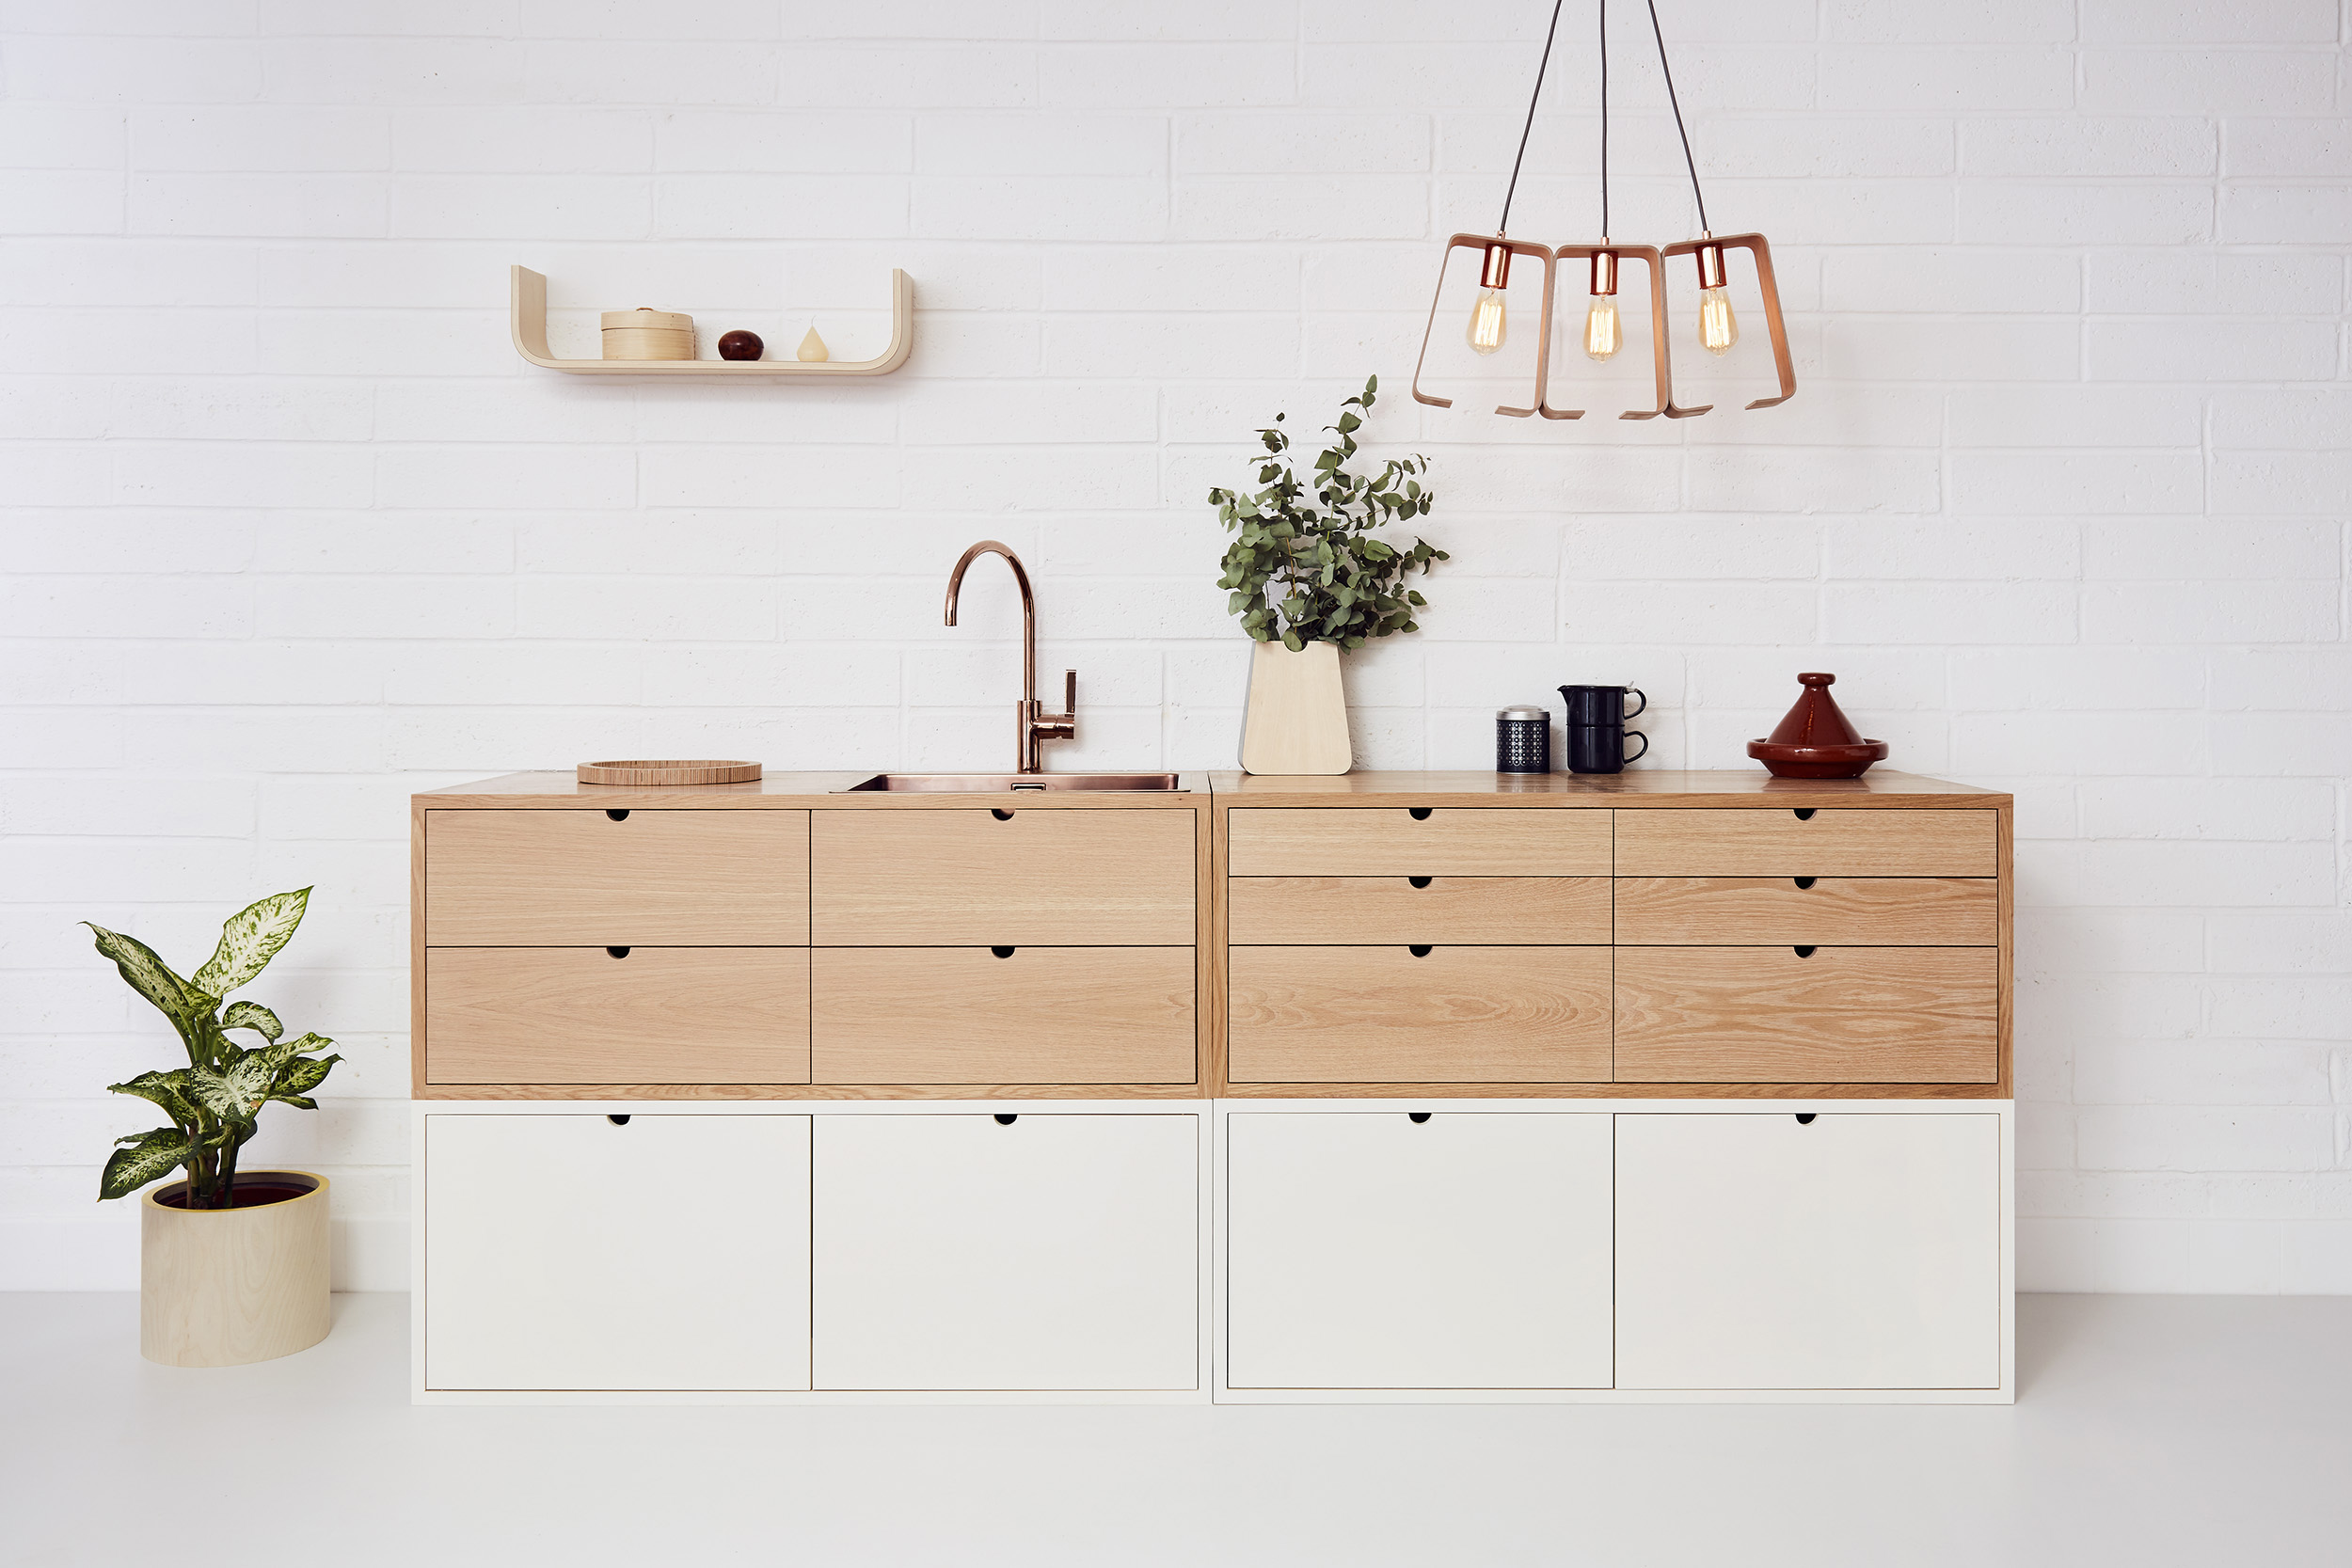 Anna and Kirsty's oak and birch plywood kitchen by Lozi